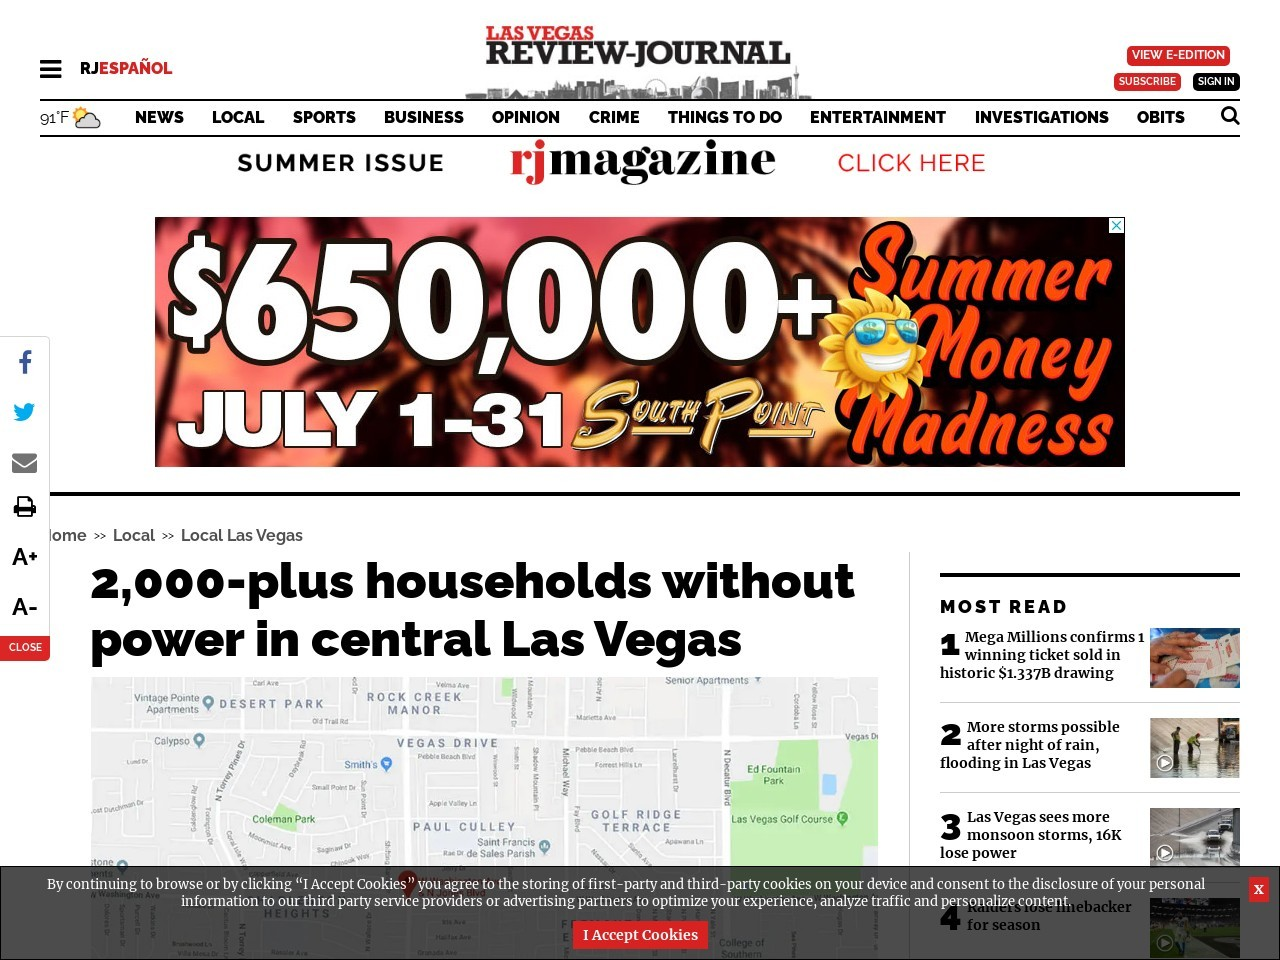 2,000-plus households without power in central Las Vegas